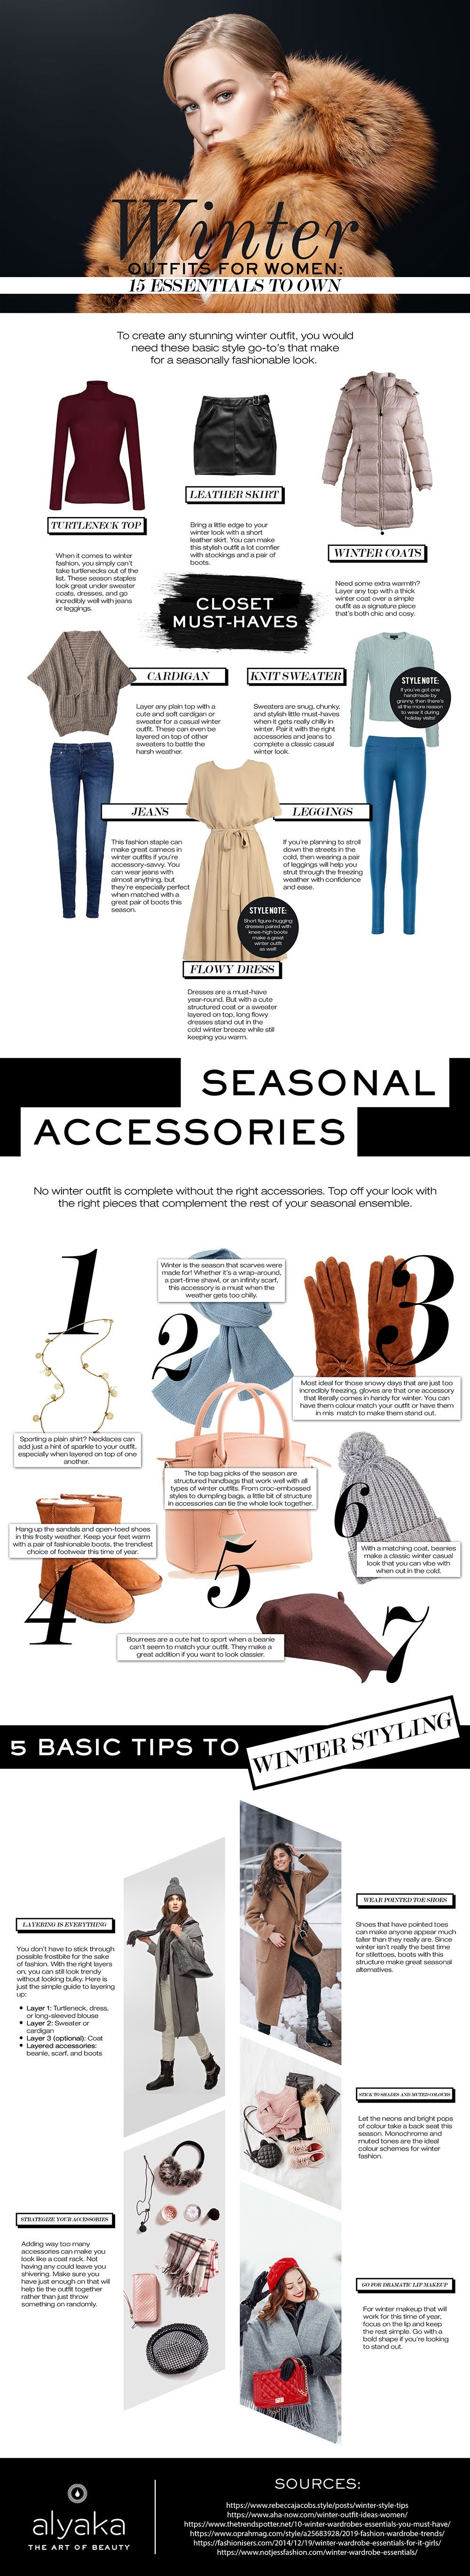 15 Fashion Essentials to Complete Your Winter Outfit #infographic